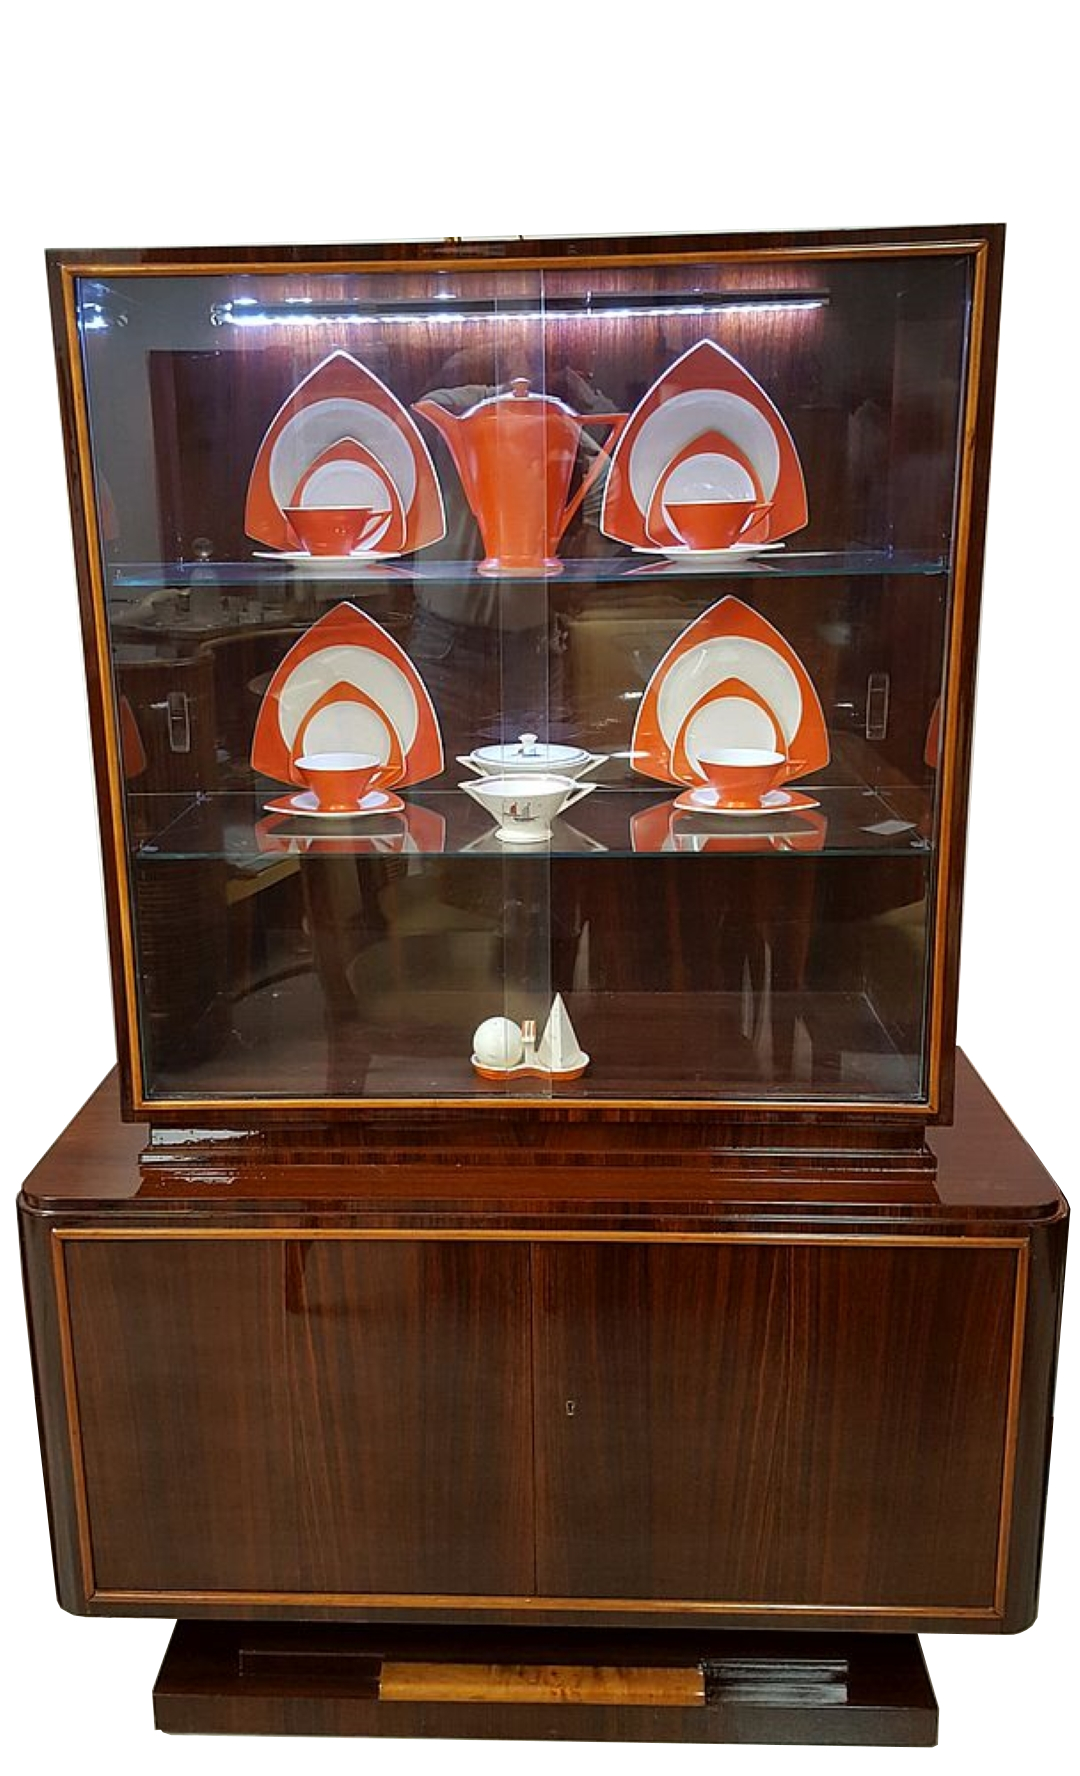 1930s French Art Deco China Cabinet In Style Of Ruhlmann Original Antique Furniture